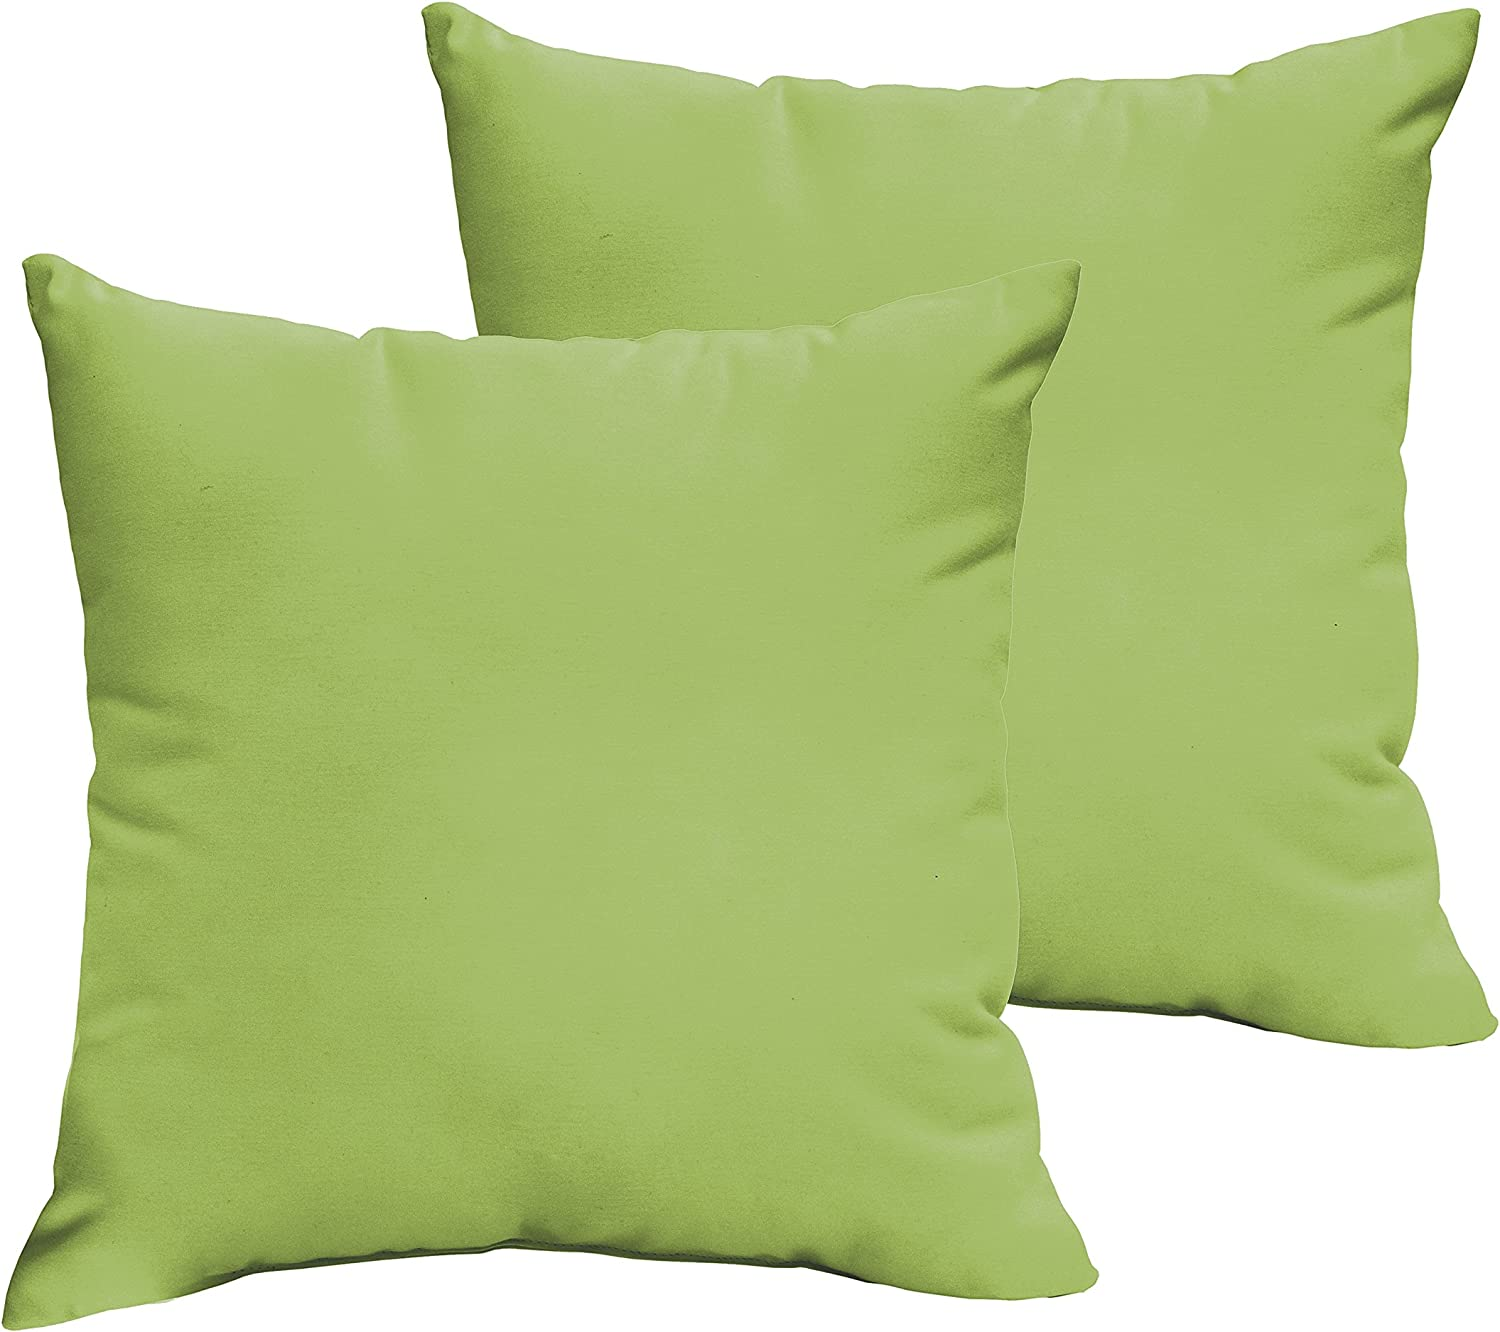 Mozaic AZPS7689 Indoor Outdoor Square Pillows Fees free!! Set 2 inch of 16 Regular discount